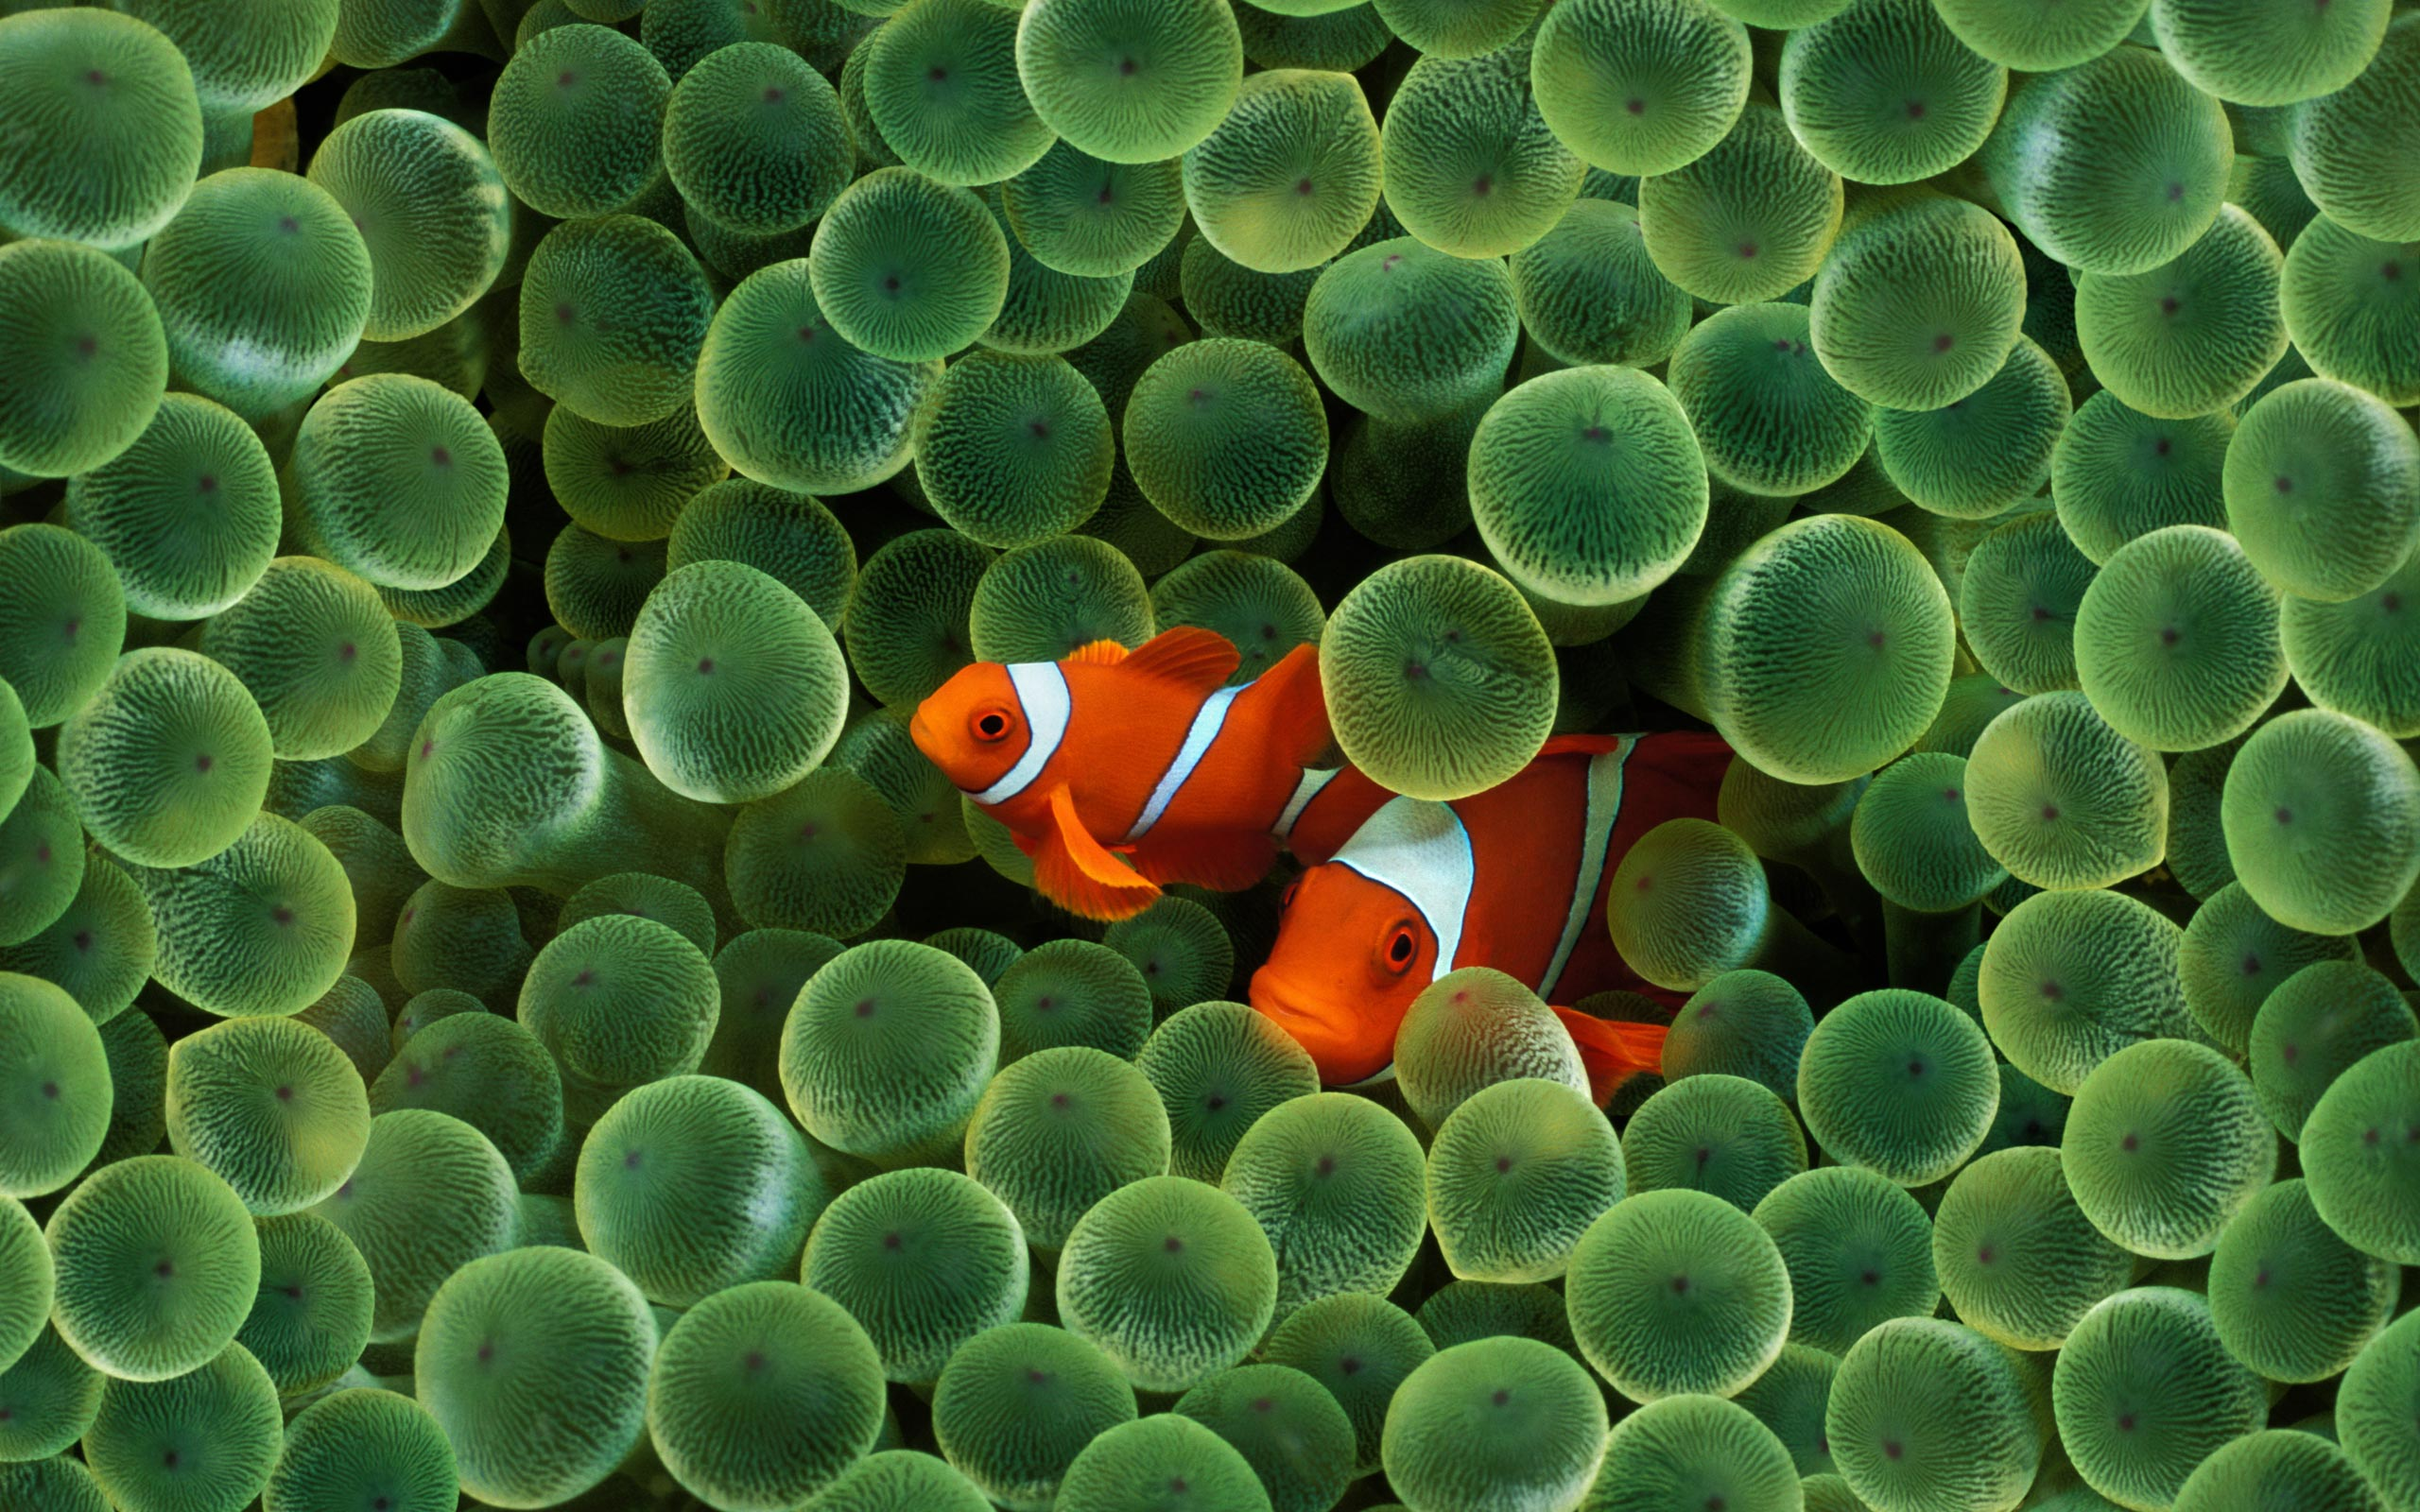 8k Animal Wallpaper Download: Fish Wallpapers, Photos And Desktop Backgrounds Up To 8K